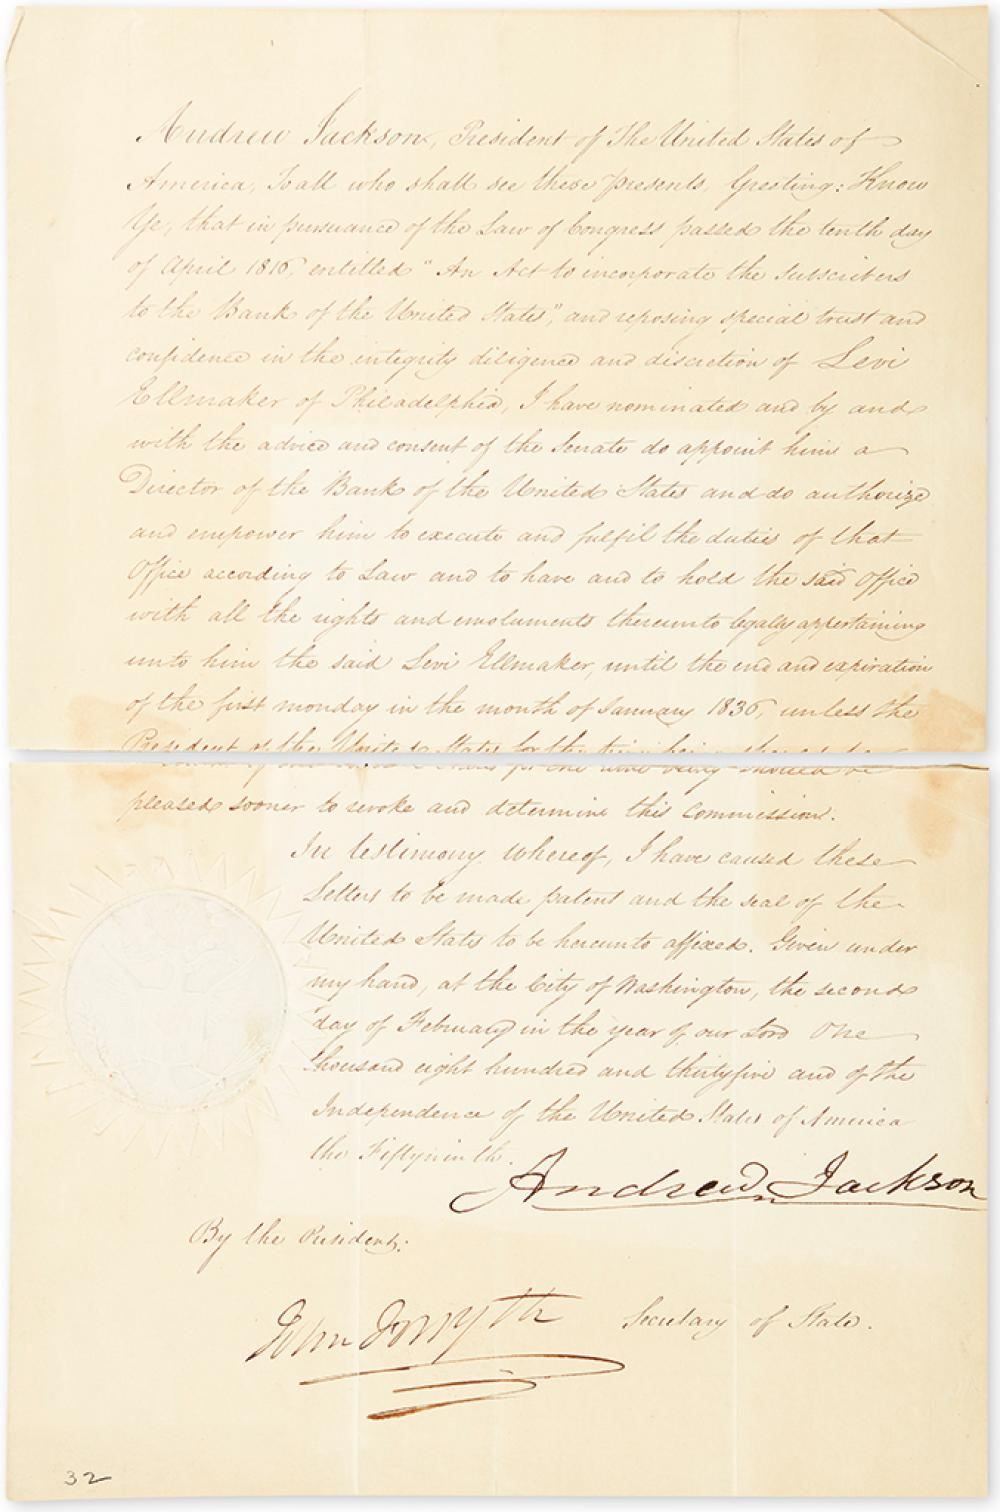 JACKSON, ANDREW. Document Signed, as President, appointing Levi Ellmaker a Director of the Bank of the United States.